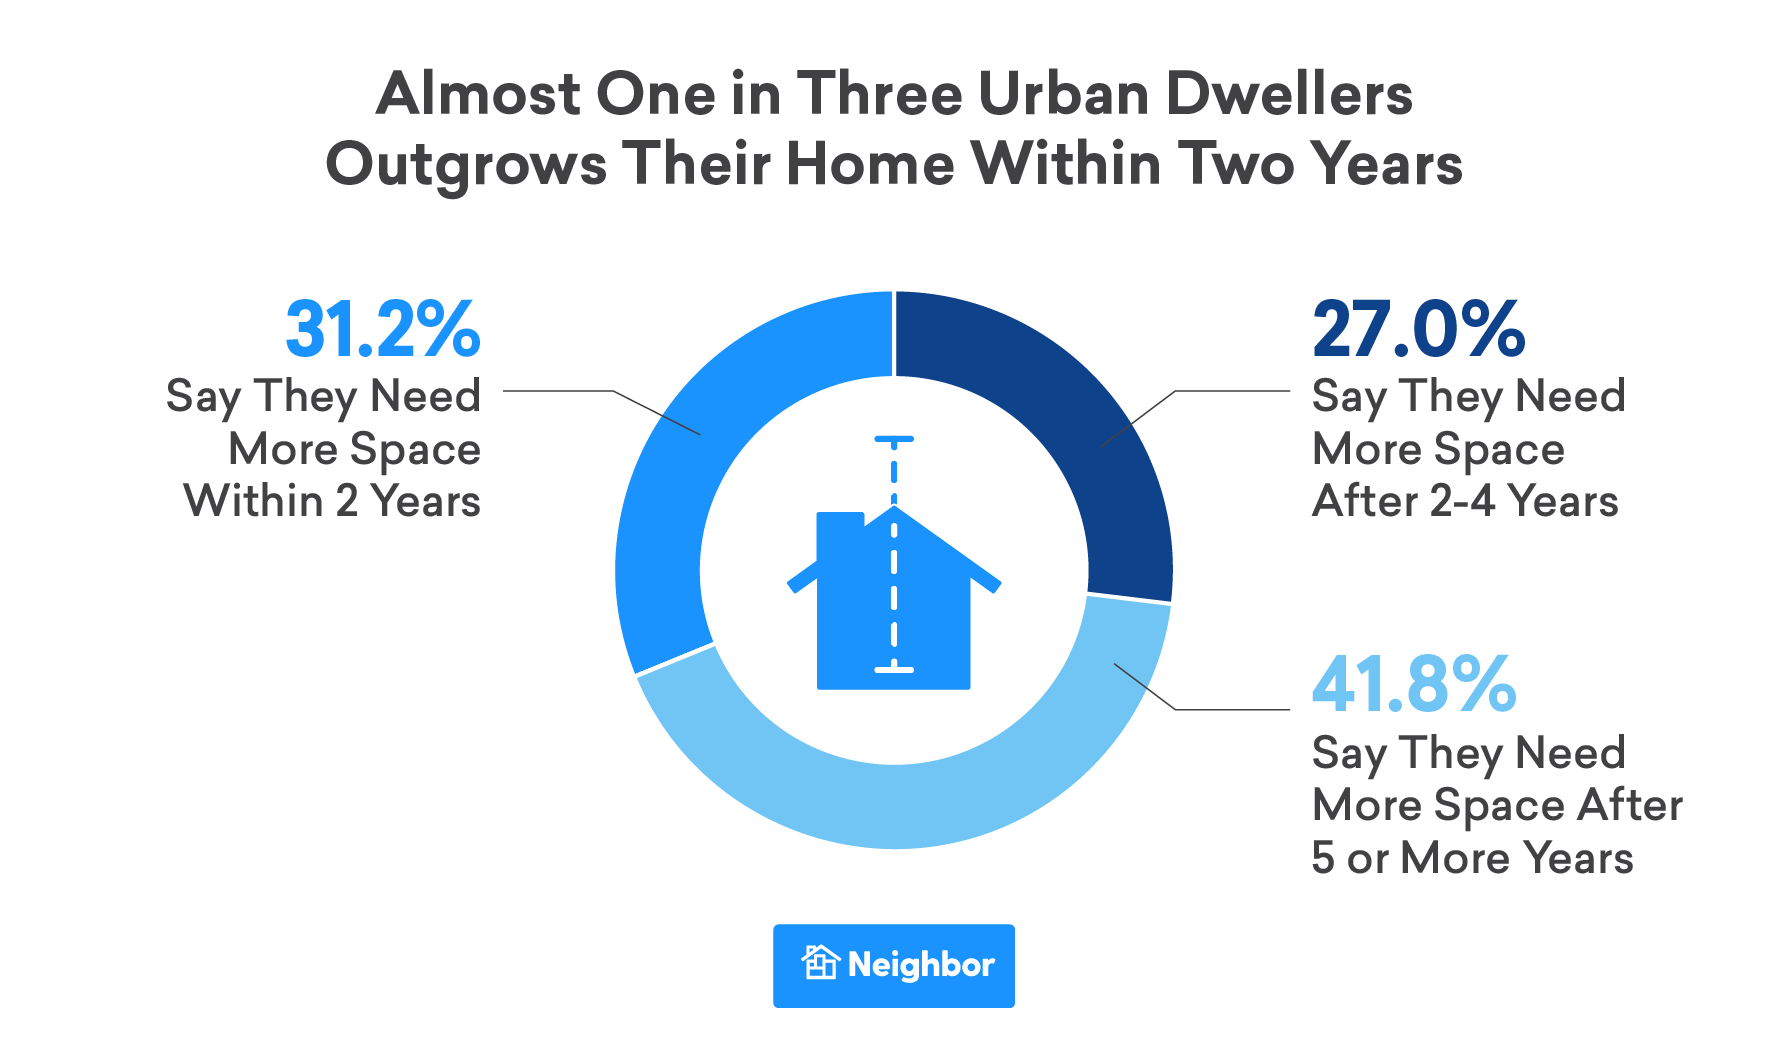 Urban dwellers one in three say they've outgrown their home in less than two years